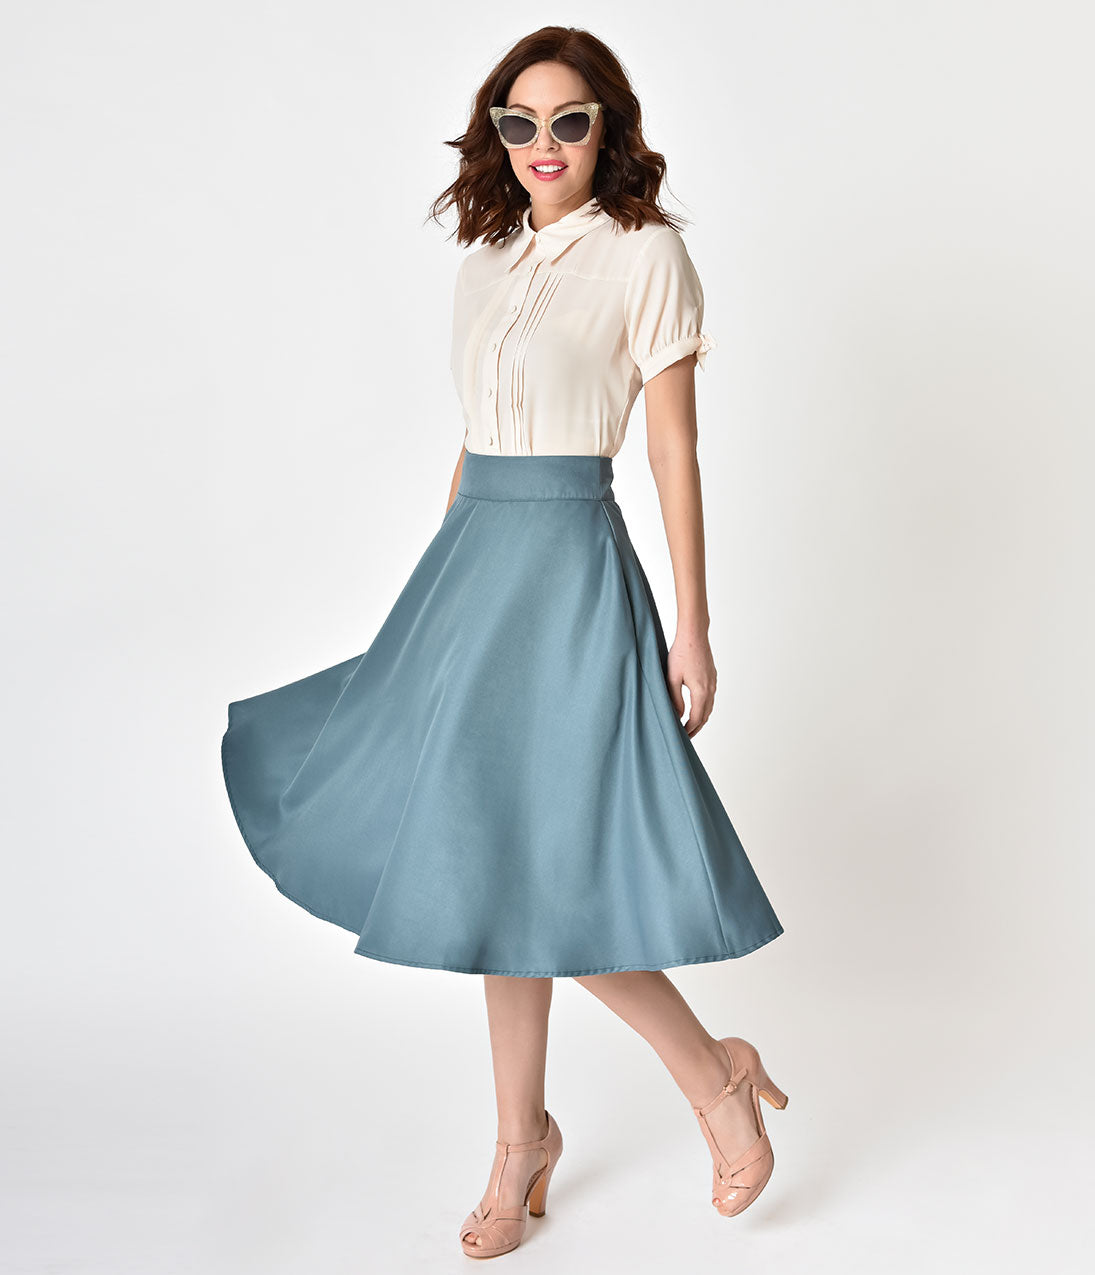 Retro Skirts: Vintage, Pencil, Circle, & Plus Sizes Unique Vintage Retro Style Sage High Waist Vivien Swing Skirt $48.00 AT vintagedancer.com